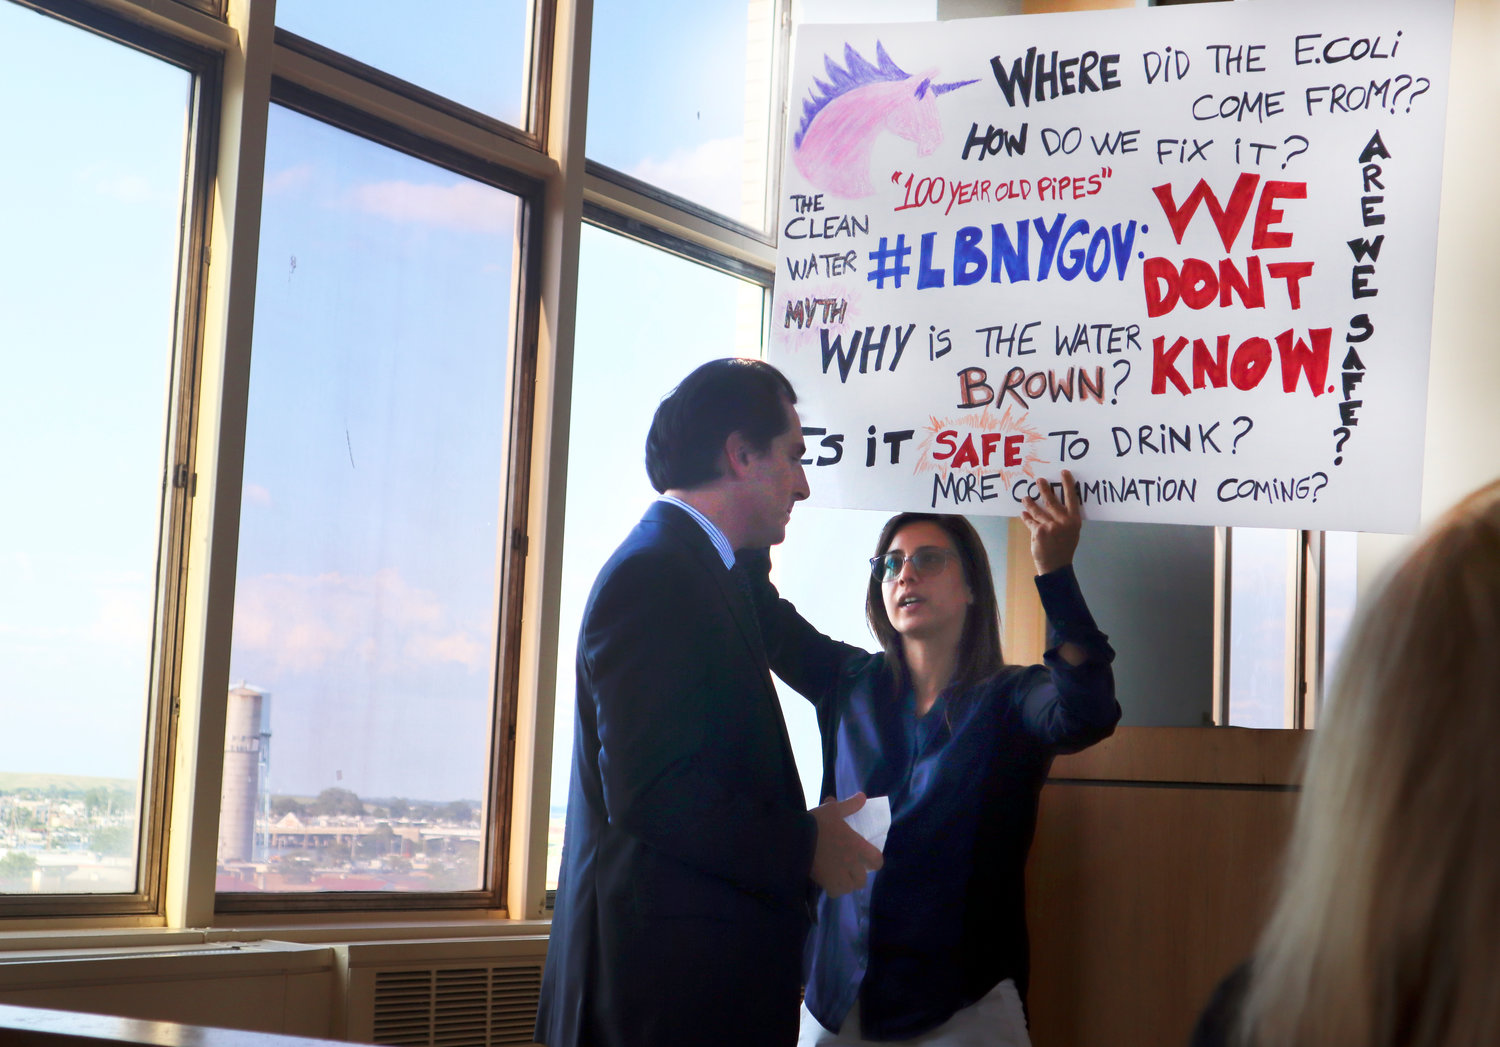 Long Beach resident Maylan Lamhut Studart made her concerns about the city's drinking water clear to State Sen. Todd Kaminsky.